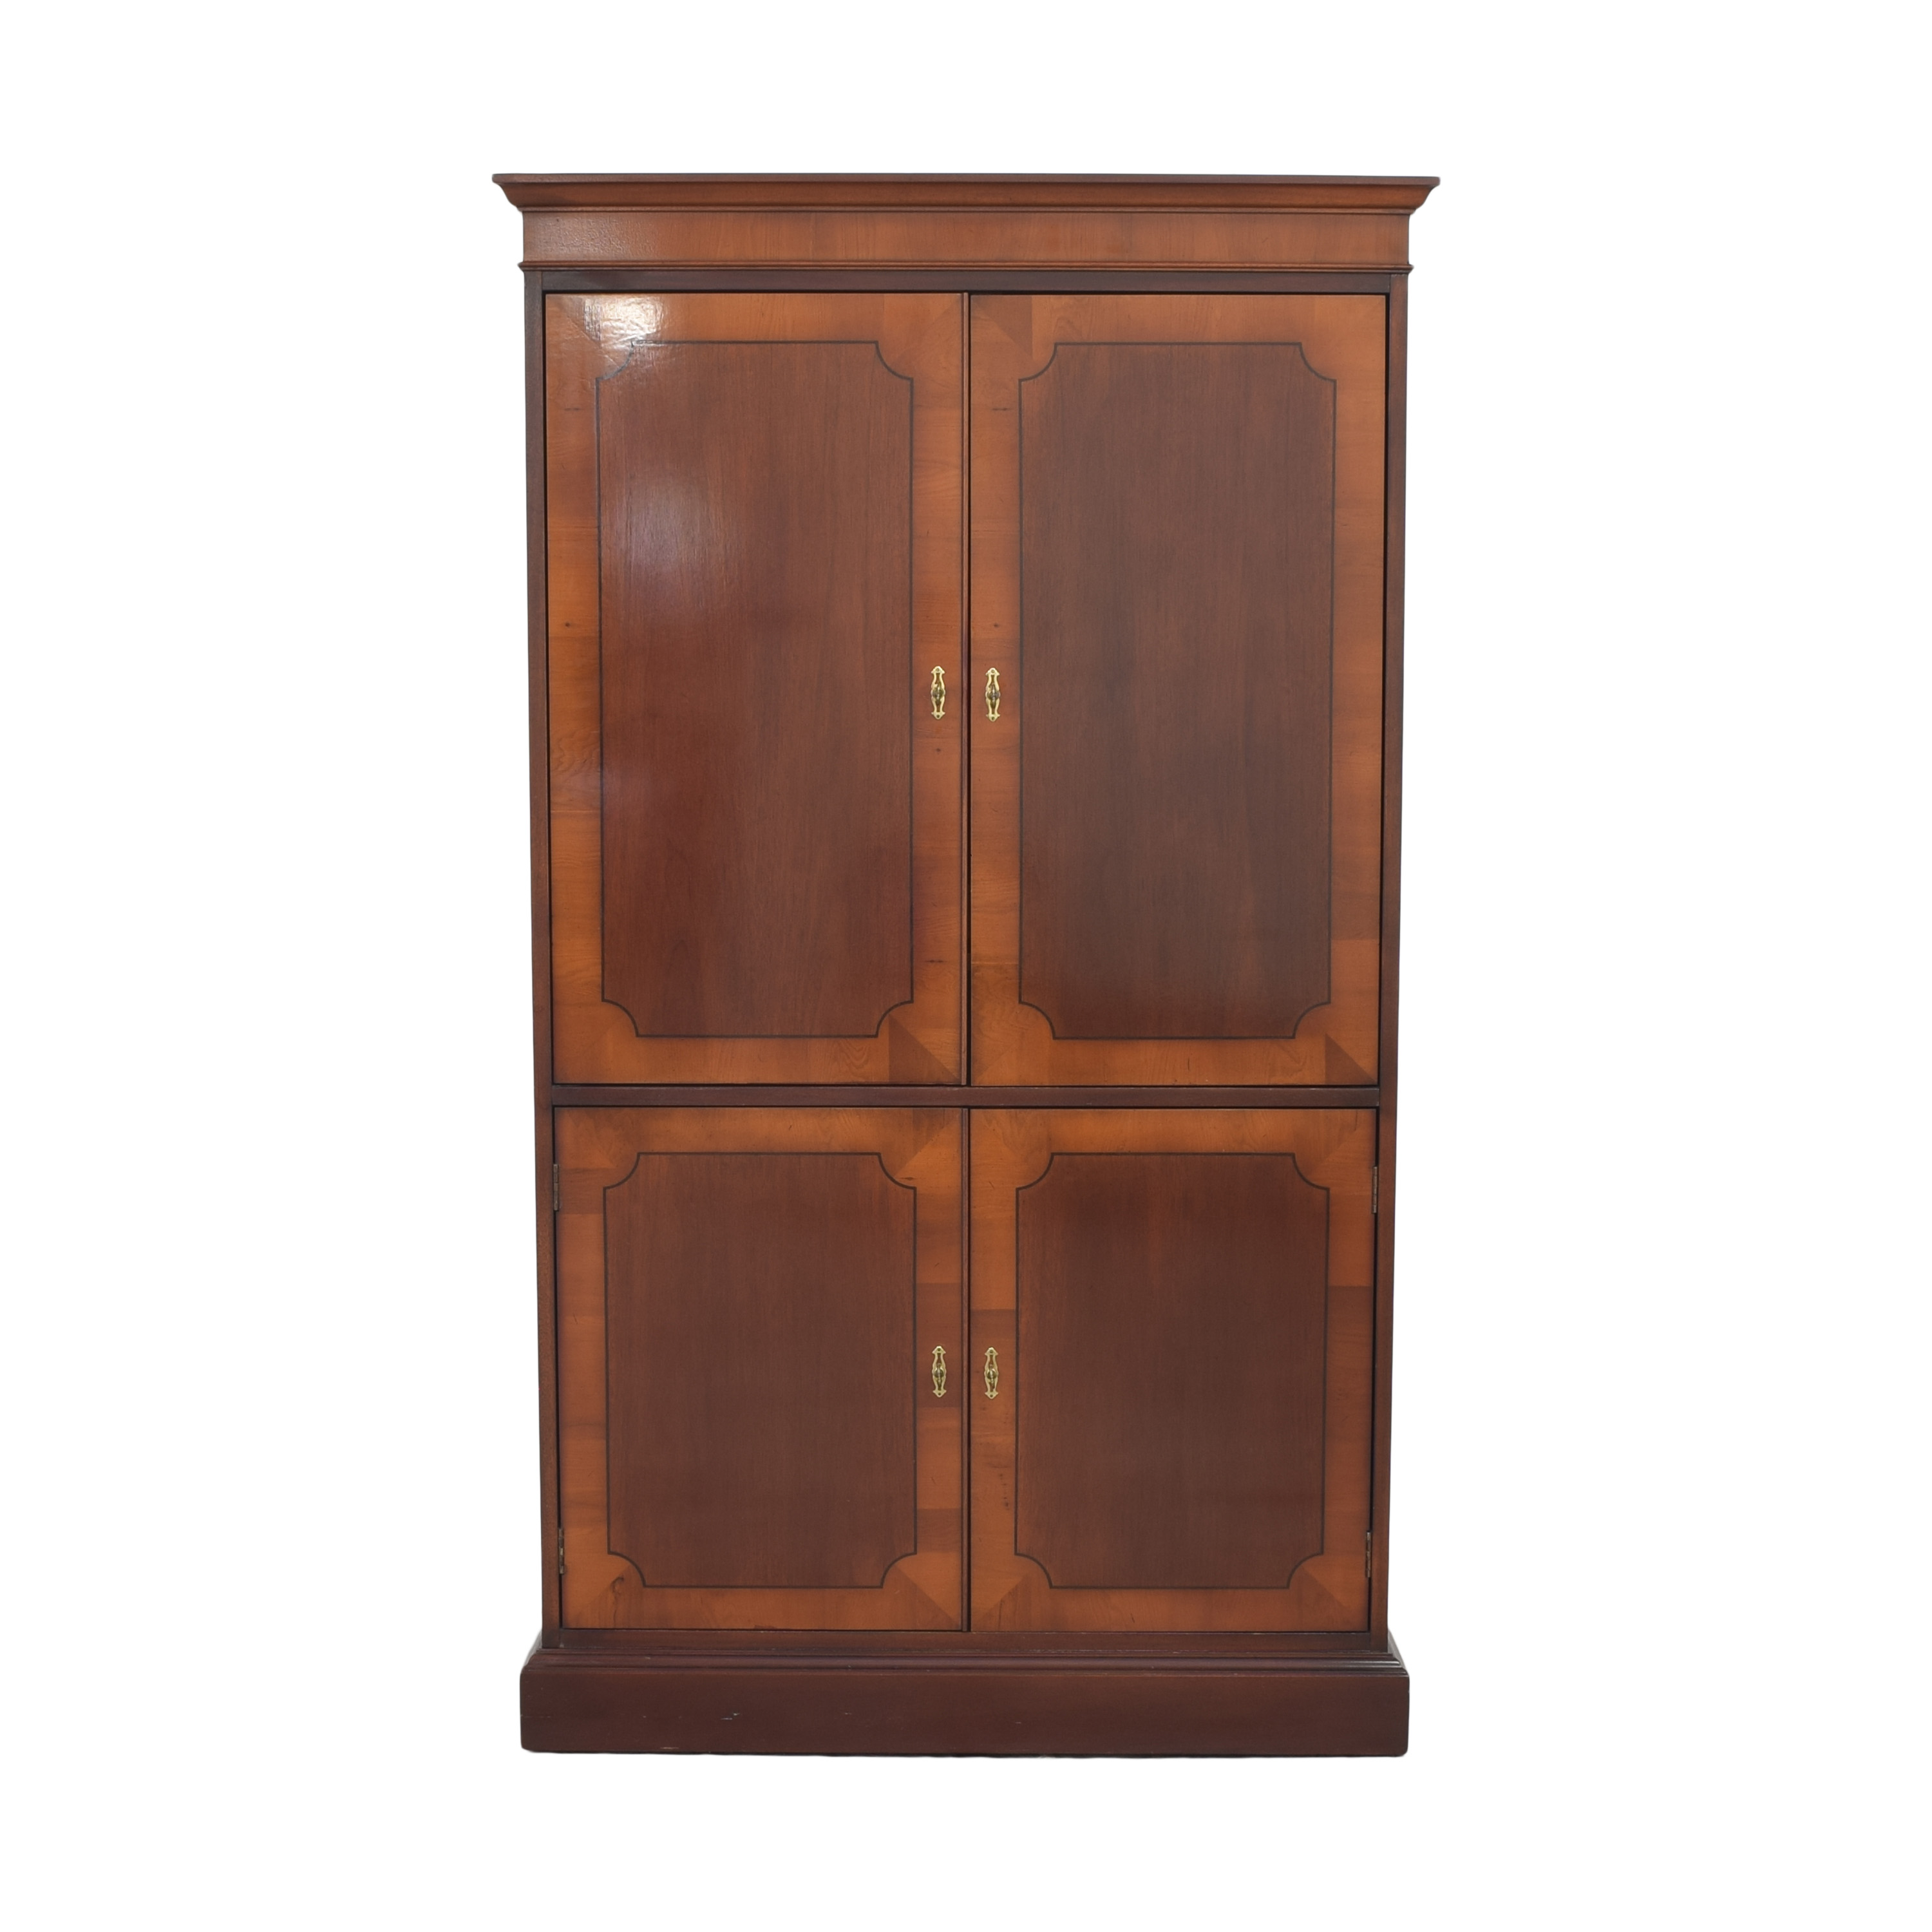 Baker Furniture Baker Furniture Armoire second hand